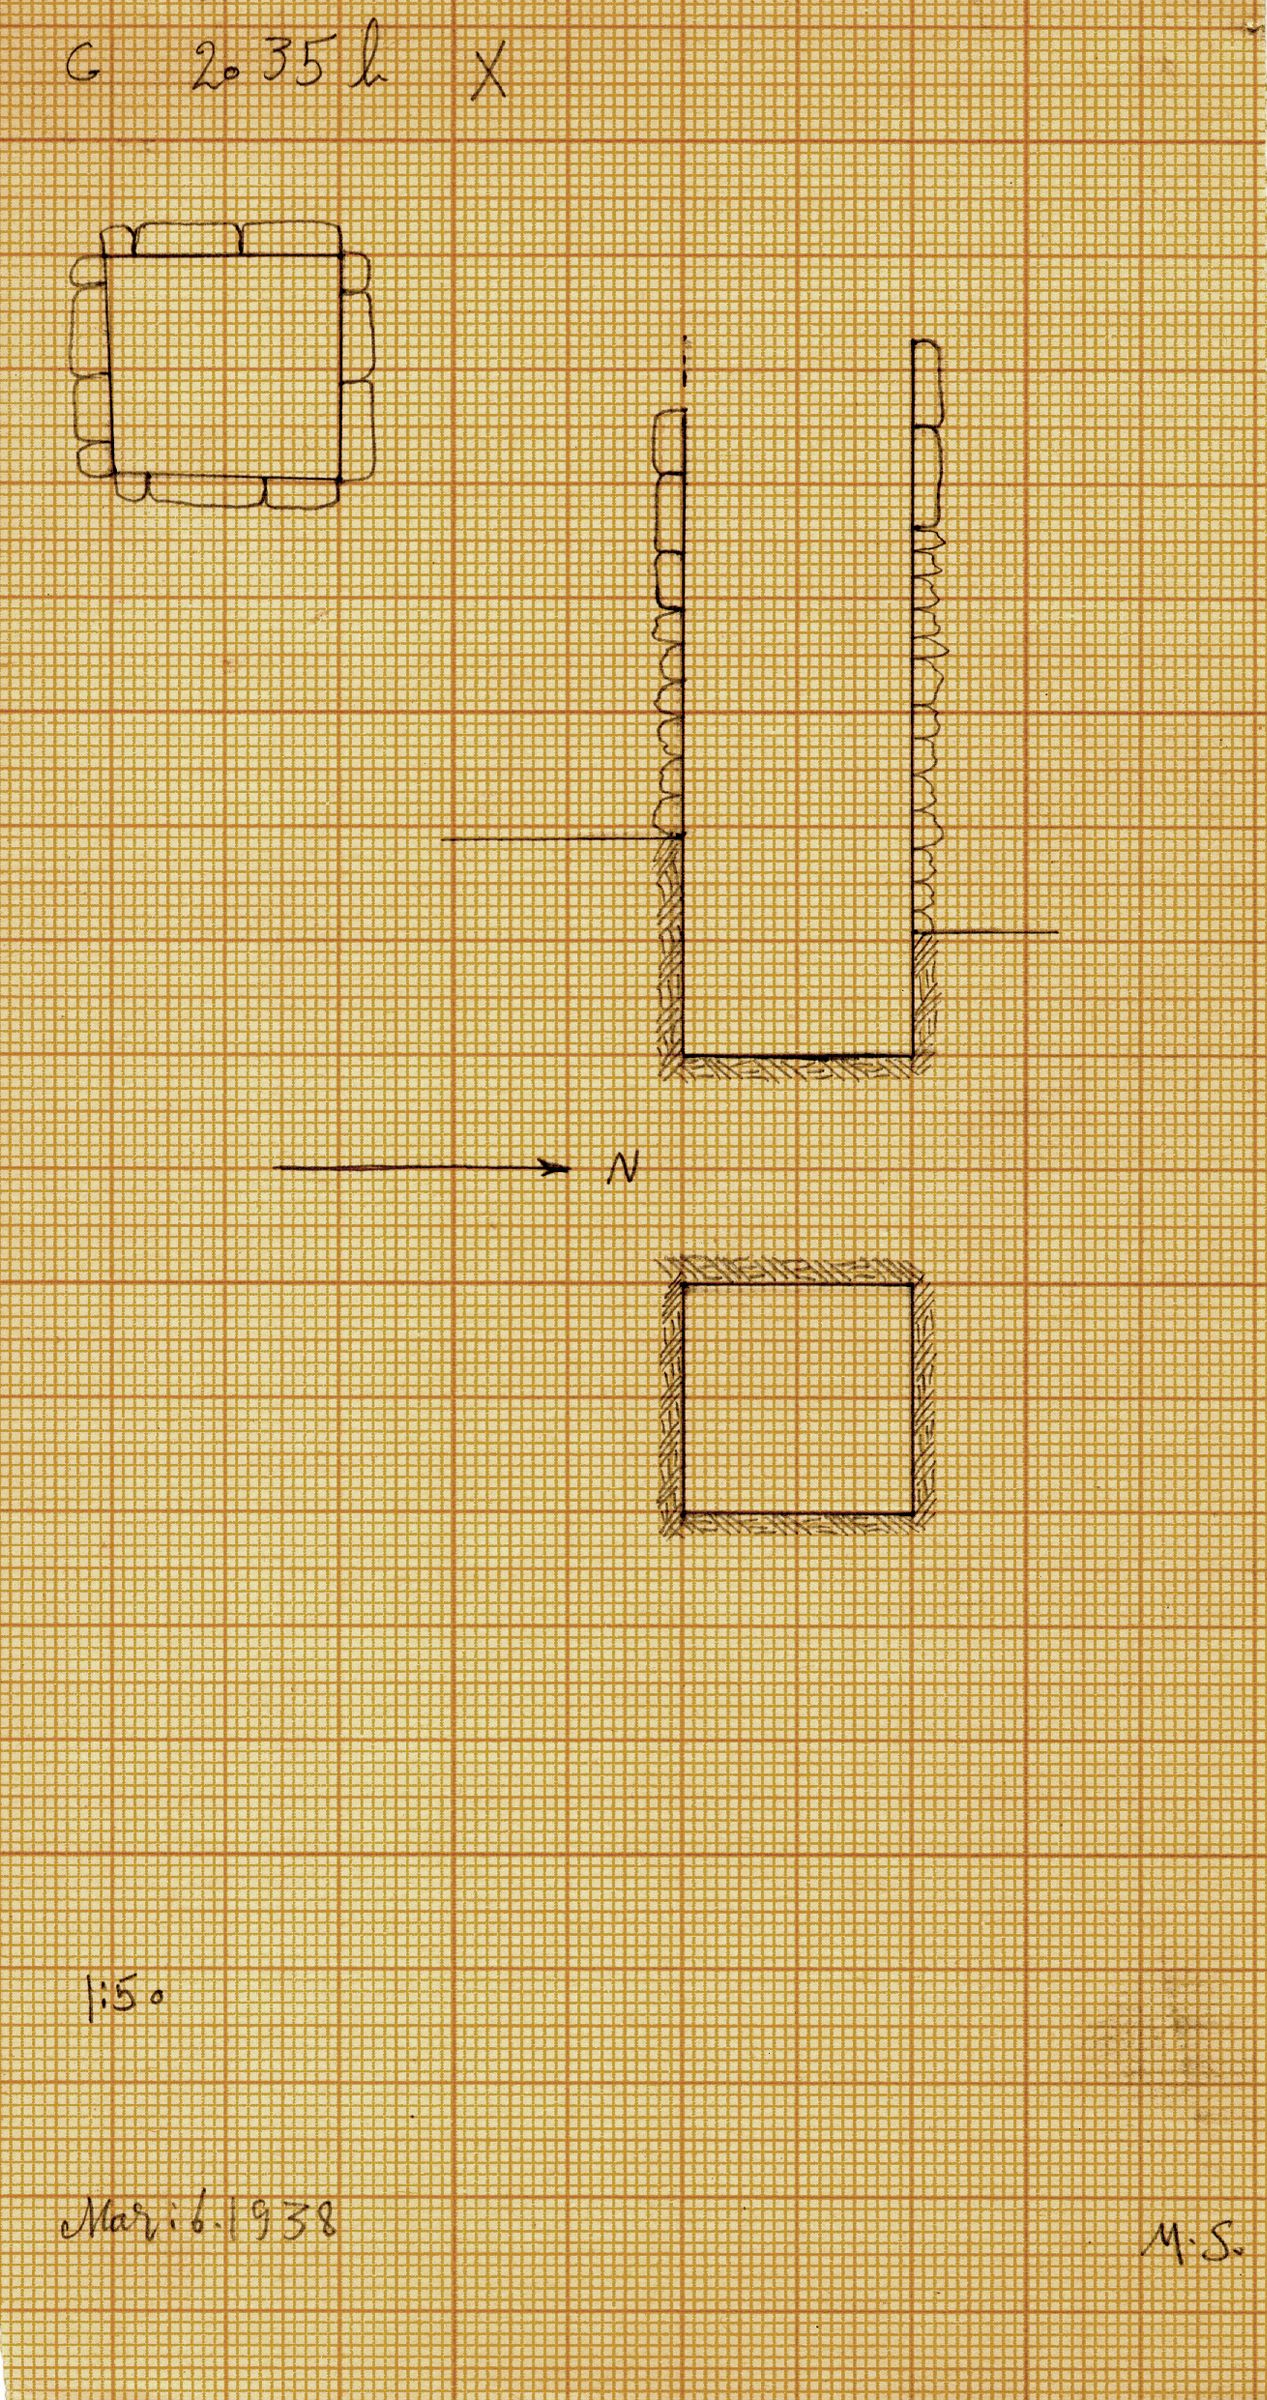 Maps and plans: G 2035b, Shaft X